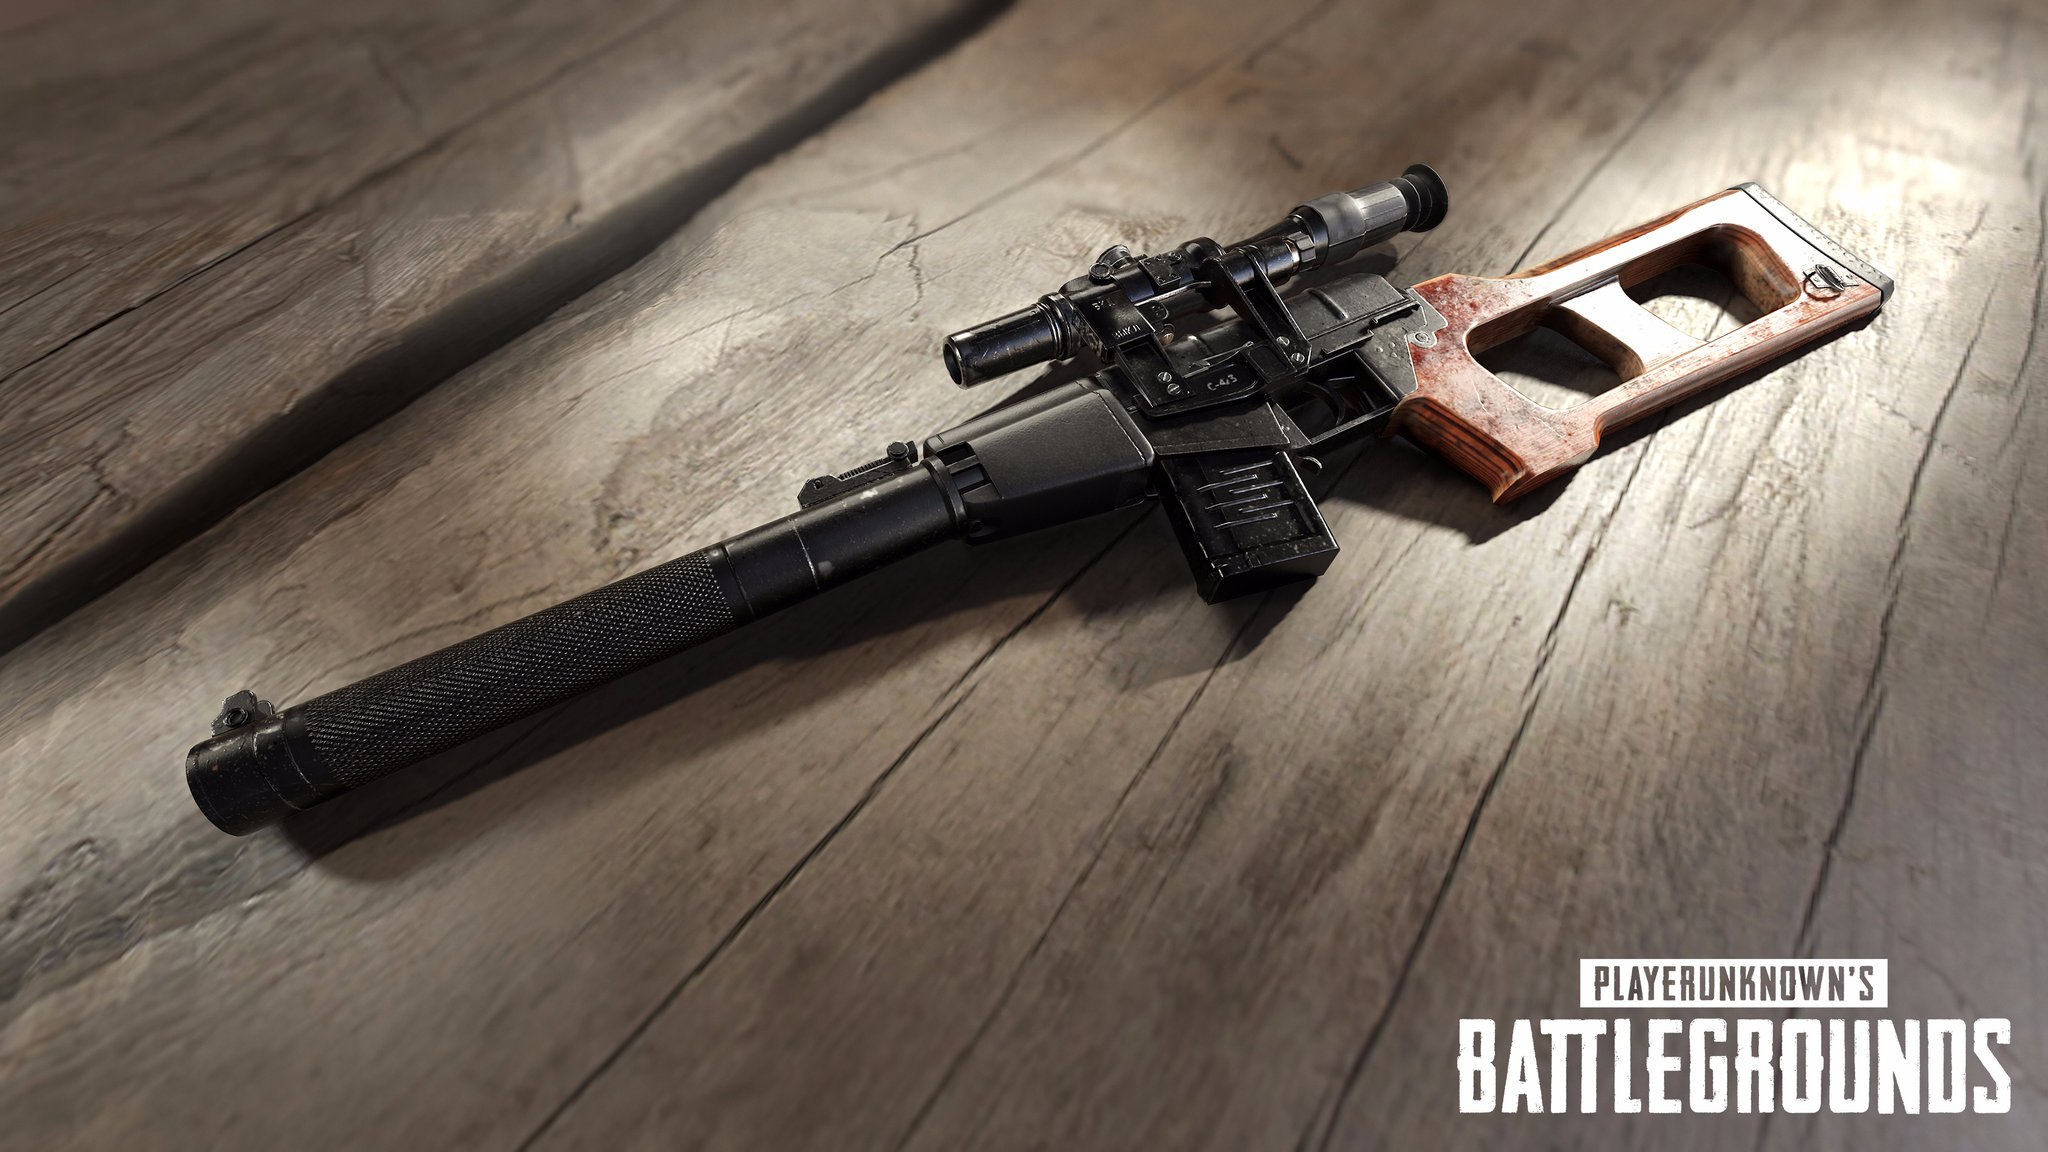 Pubg Wallpaper Weapon: PlayerUnknown's Battlegrounds New Silent Miracle Weapon